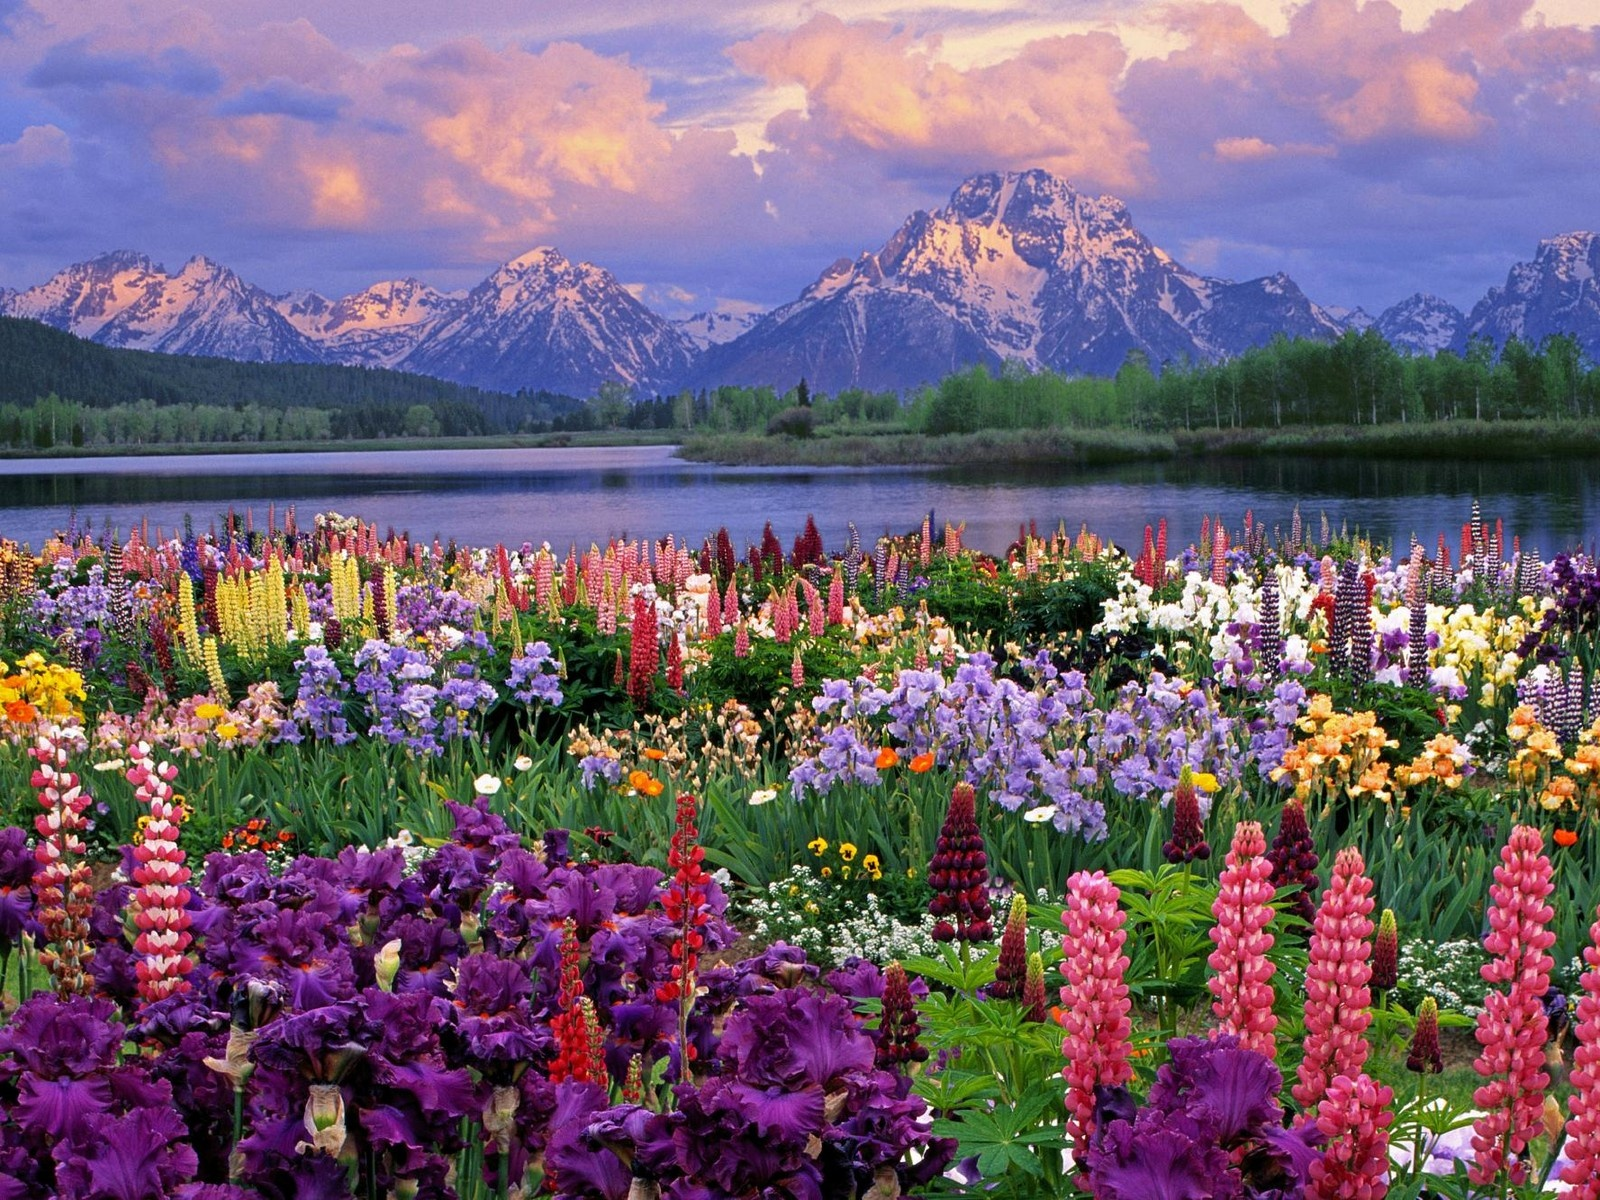 Spring wallpapers high quality download free - Wallpaper definition ...